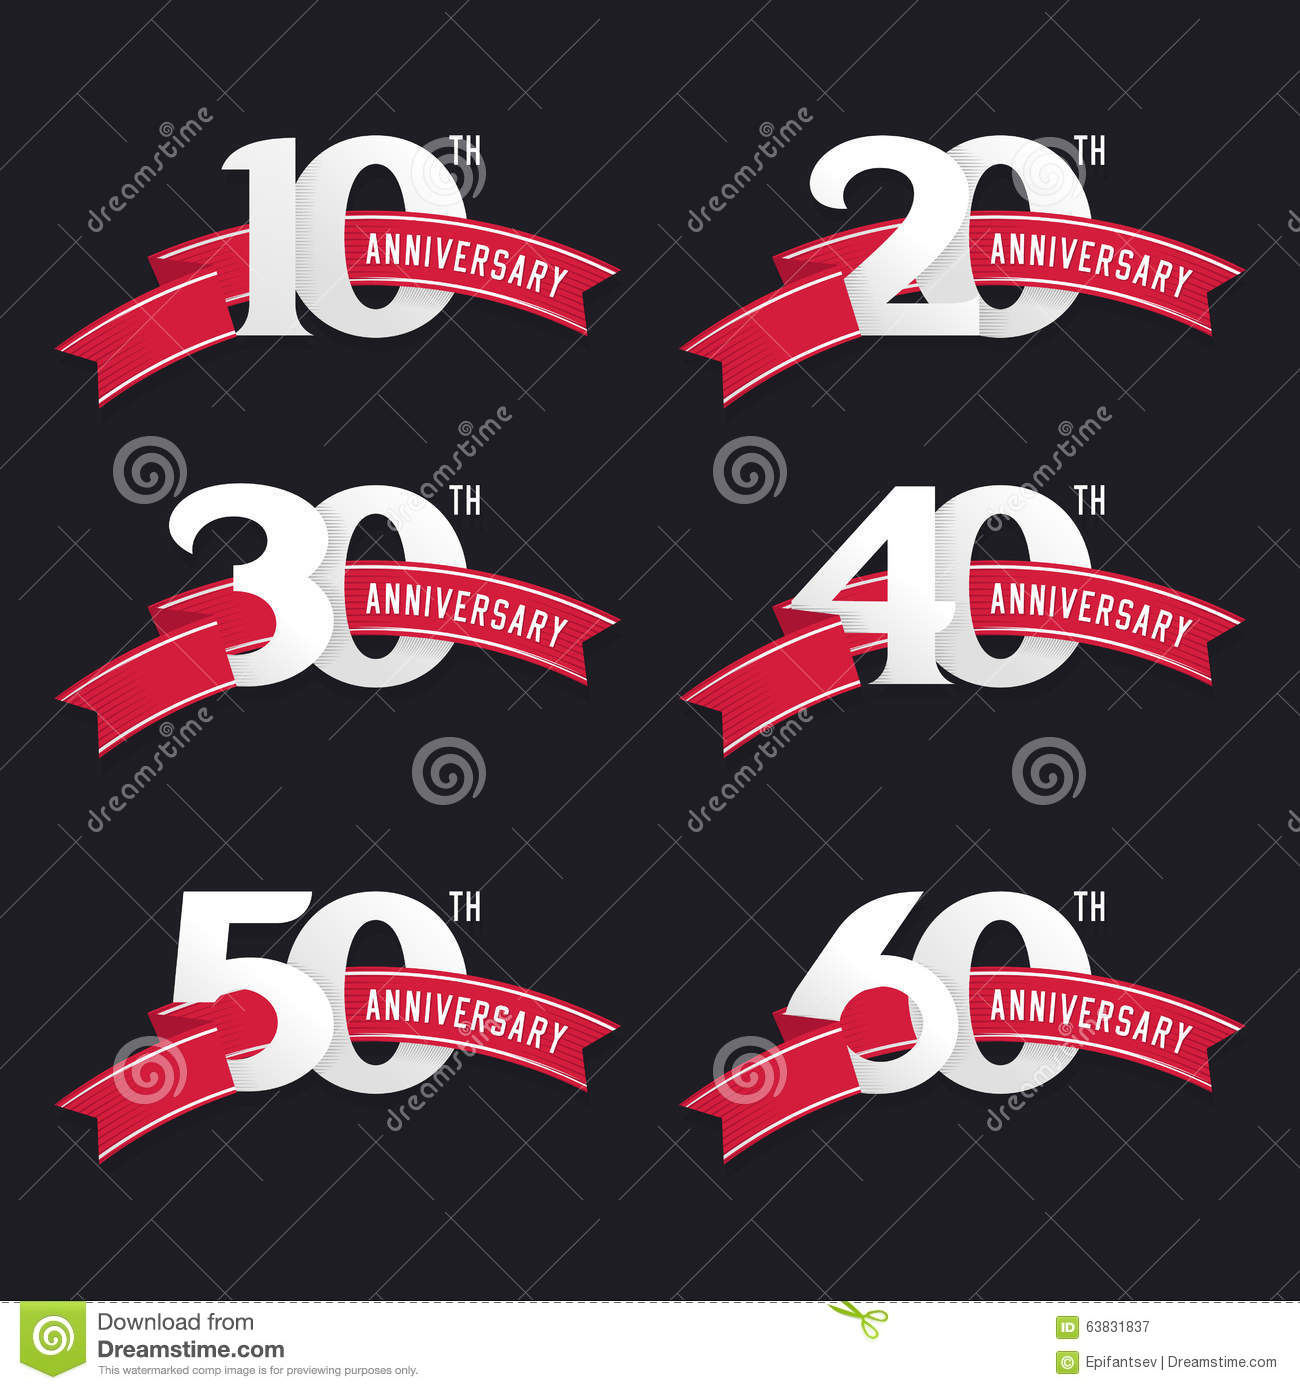 The Set Of Anniversary Signs From 10th To 60th Stock Vector